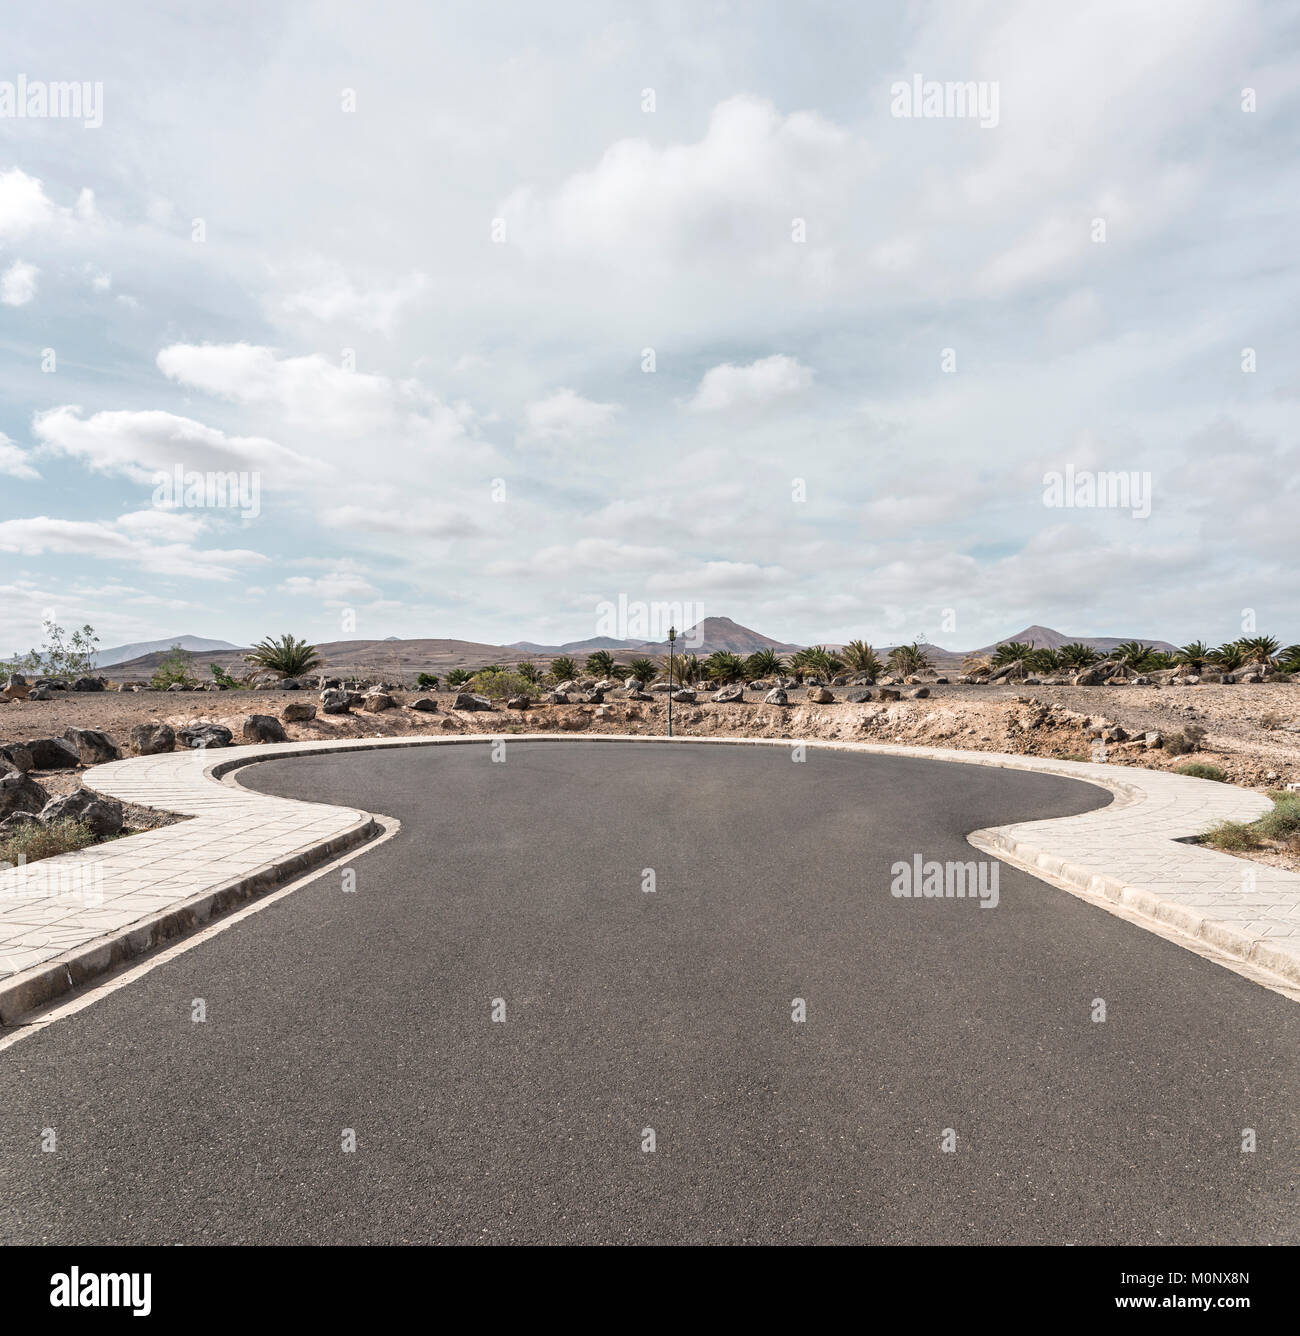 Dead-end street with turning possibility in Puerto Calero,Lanzarote,Spain - Stock Image